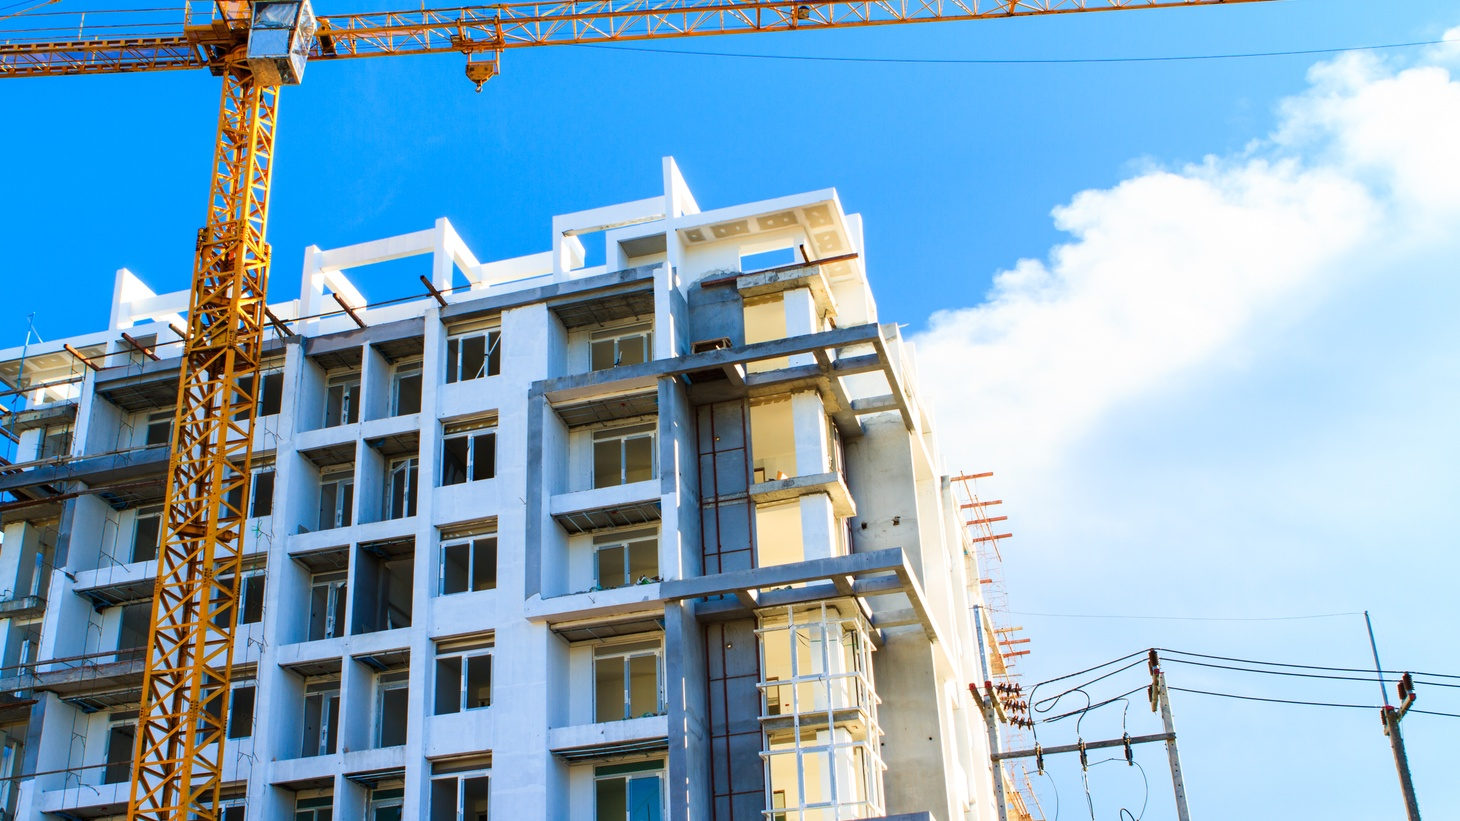 Adding to the housing supply nudges nearby rents downward, according to research by Michael Manville, an urban planning professor at UCLA. But that's not always easy to see, he says, because developers like to build in places where rents are already rising.